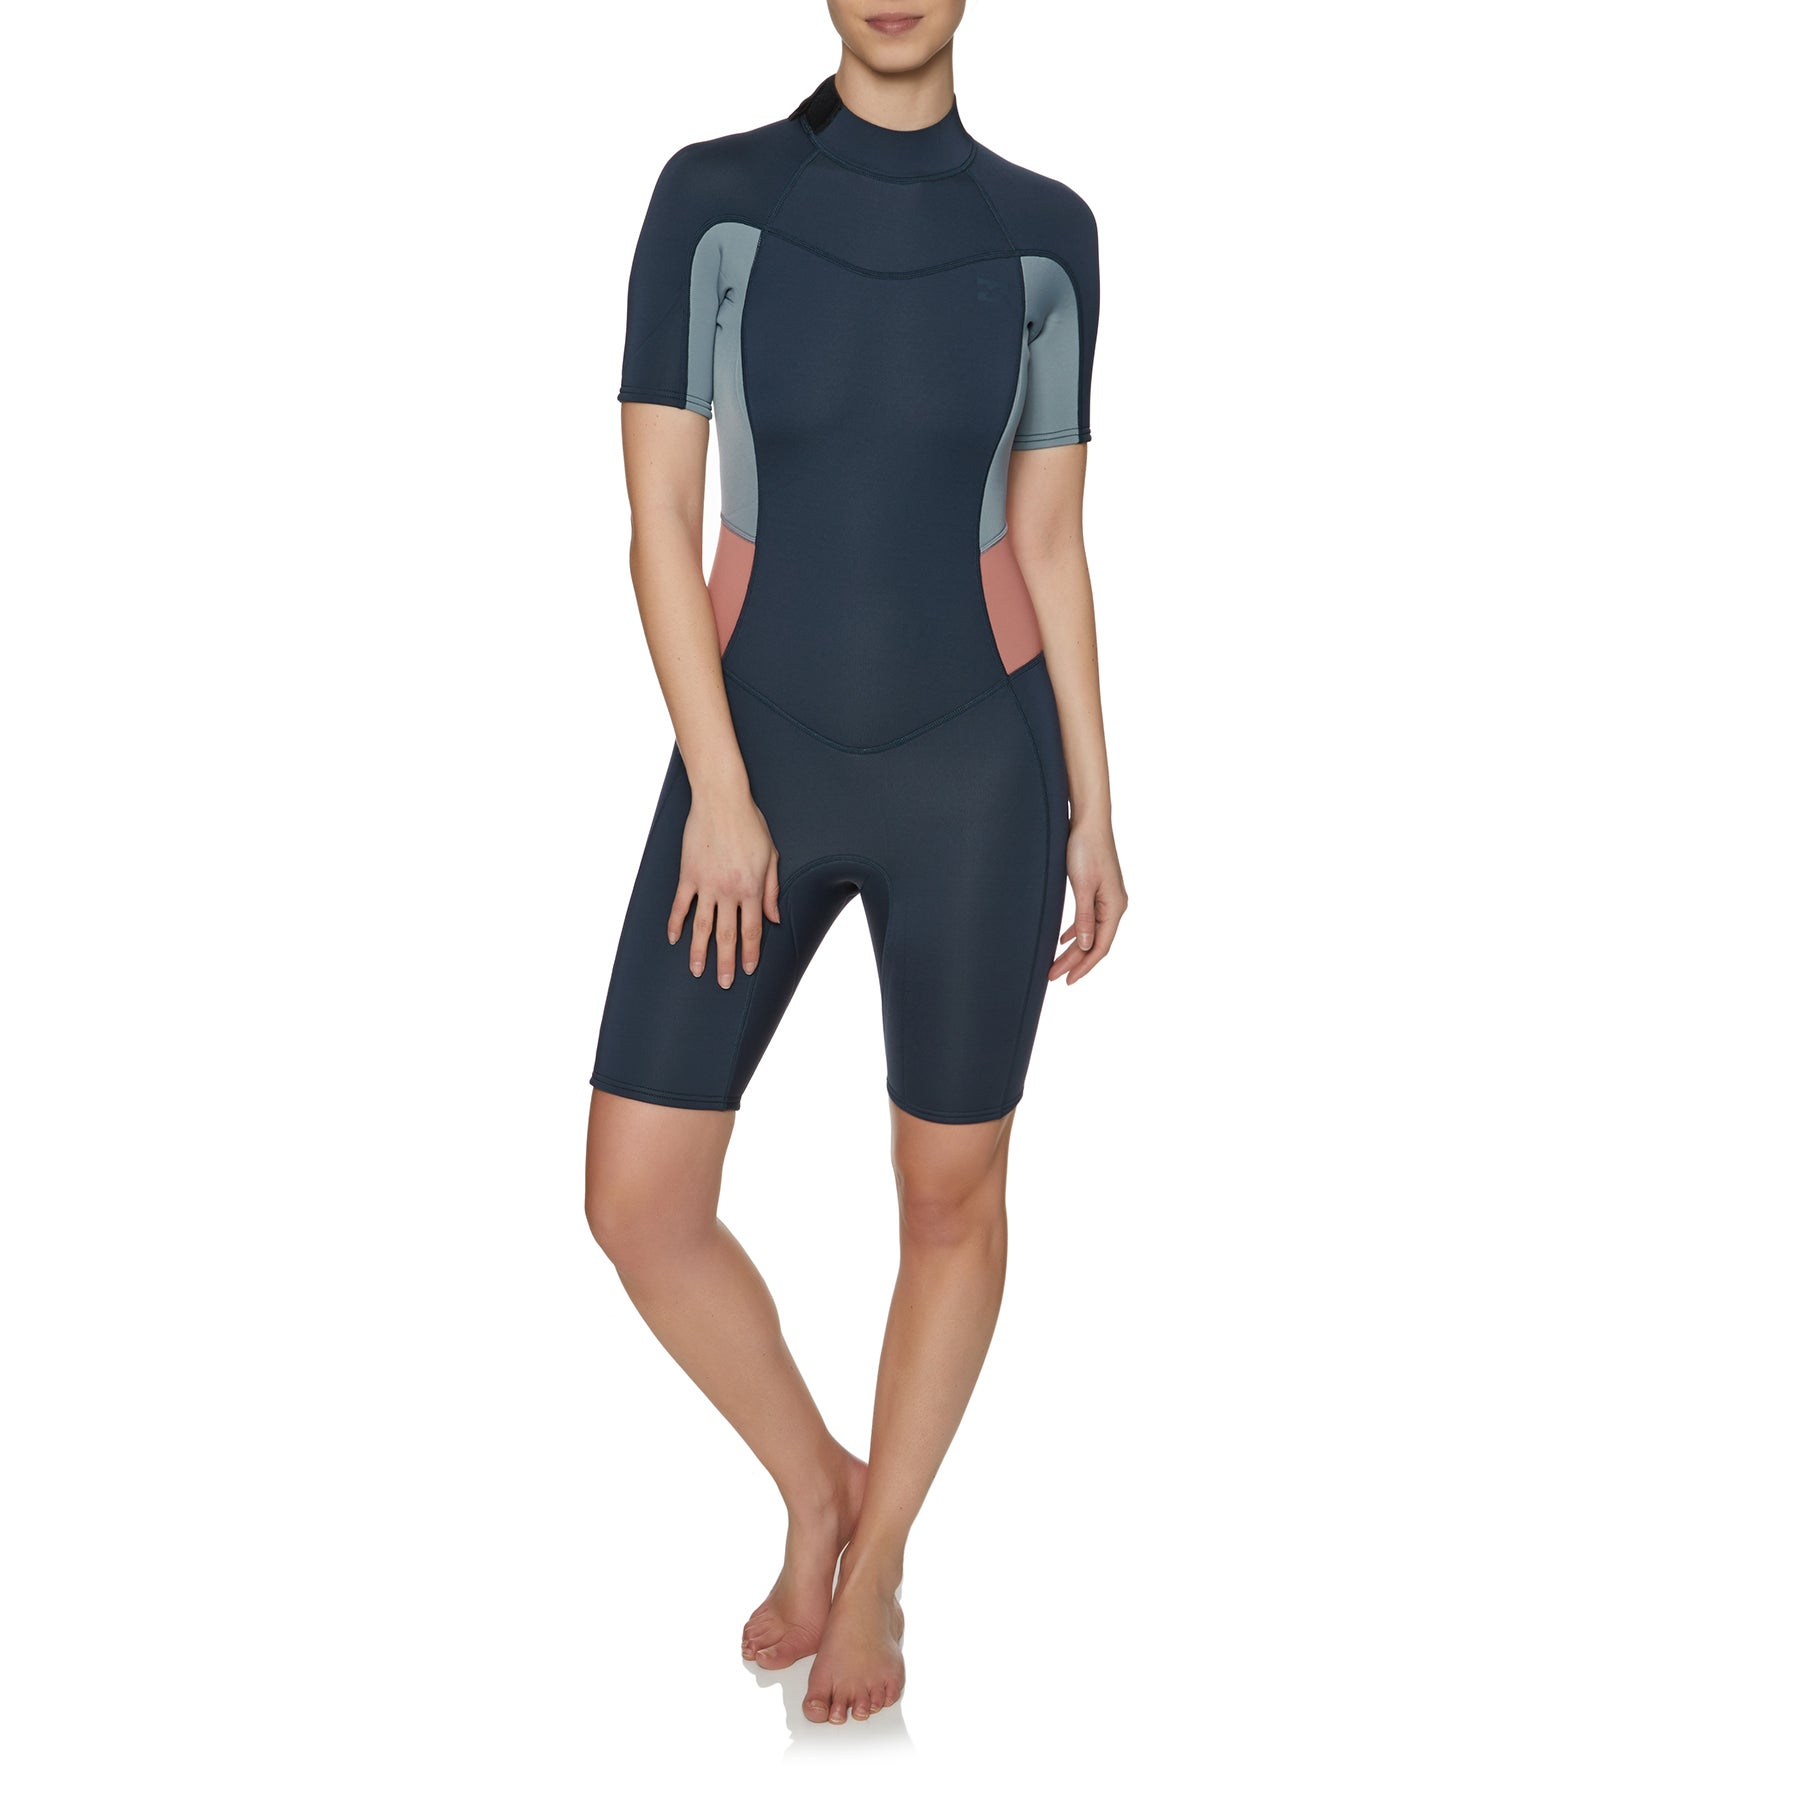 Billabong Synergy 2mm Back Zip Shorty Ladies Wetsuit